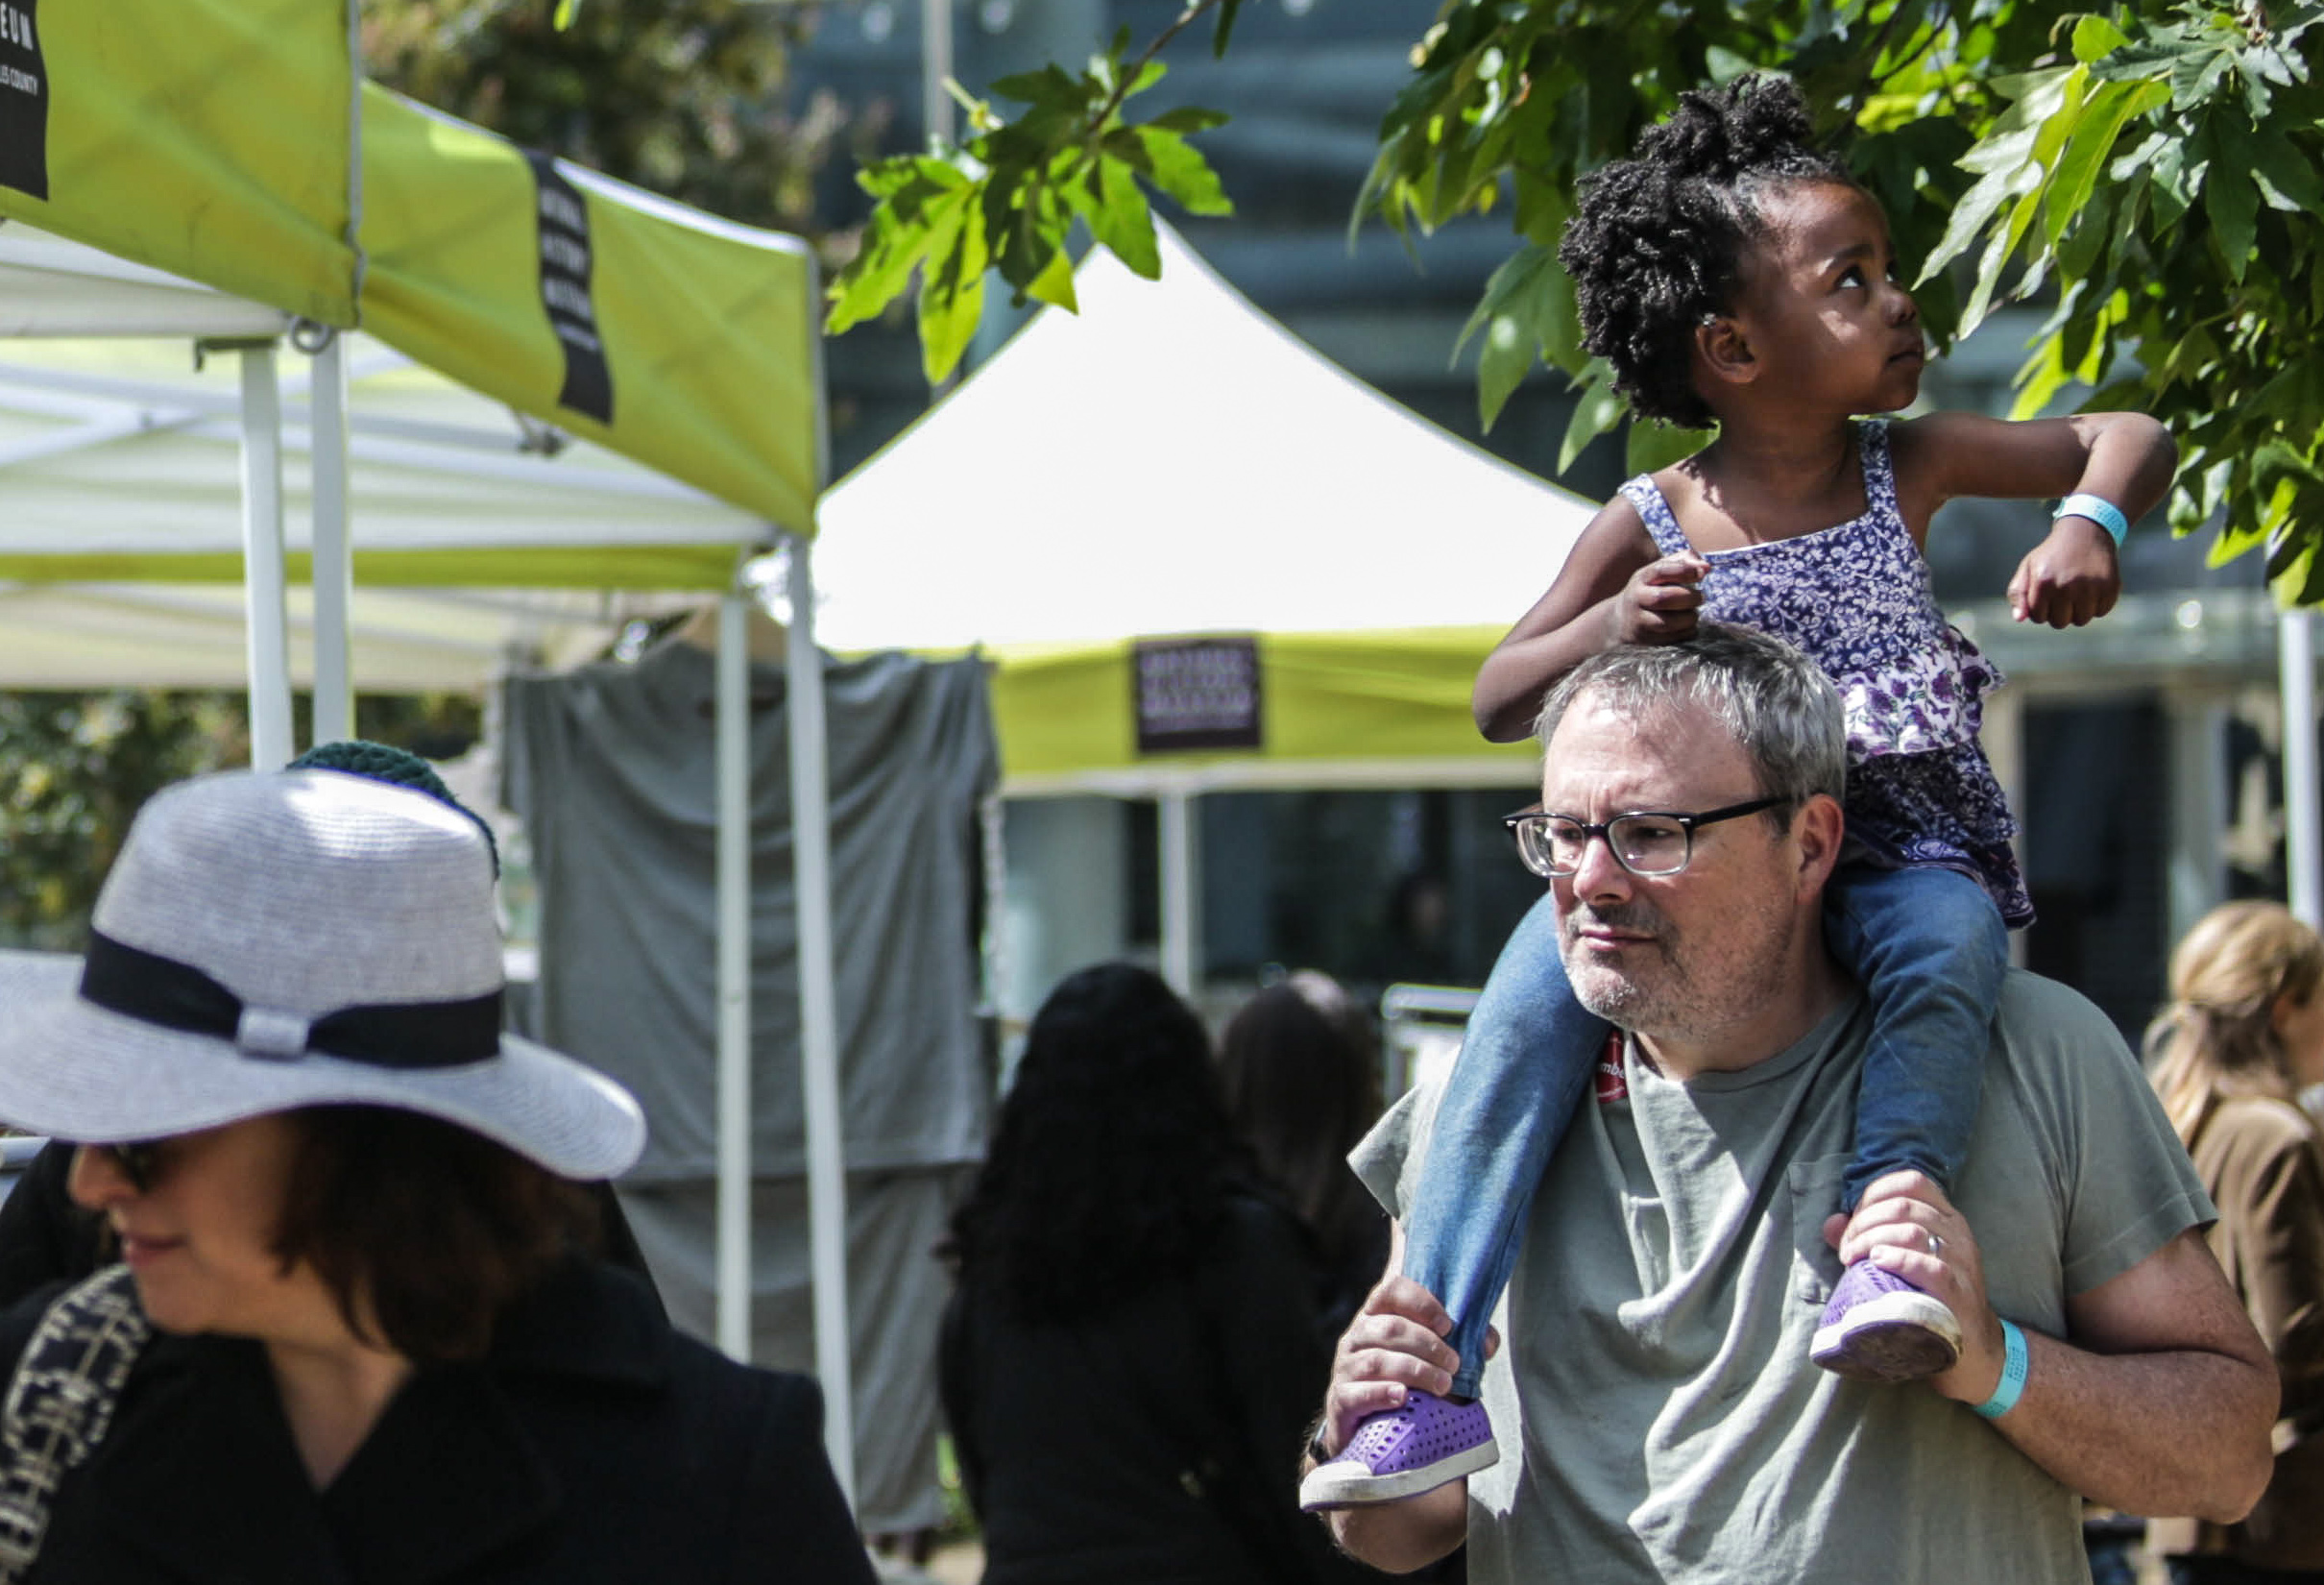 Families and children gathered at the National History Museum at the University of Southern California, Los Angeles, California to participate in the Los Angeles Natrure Fest. Events took place on Saturday, March 17, 2018. (Corsair Photo/ William Wendelman)